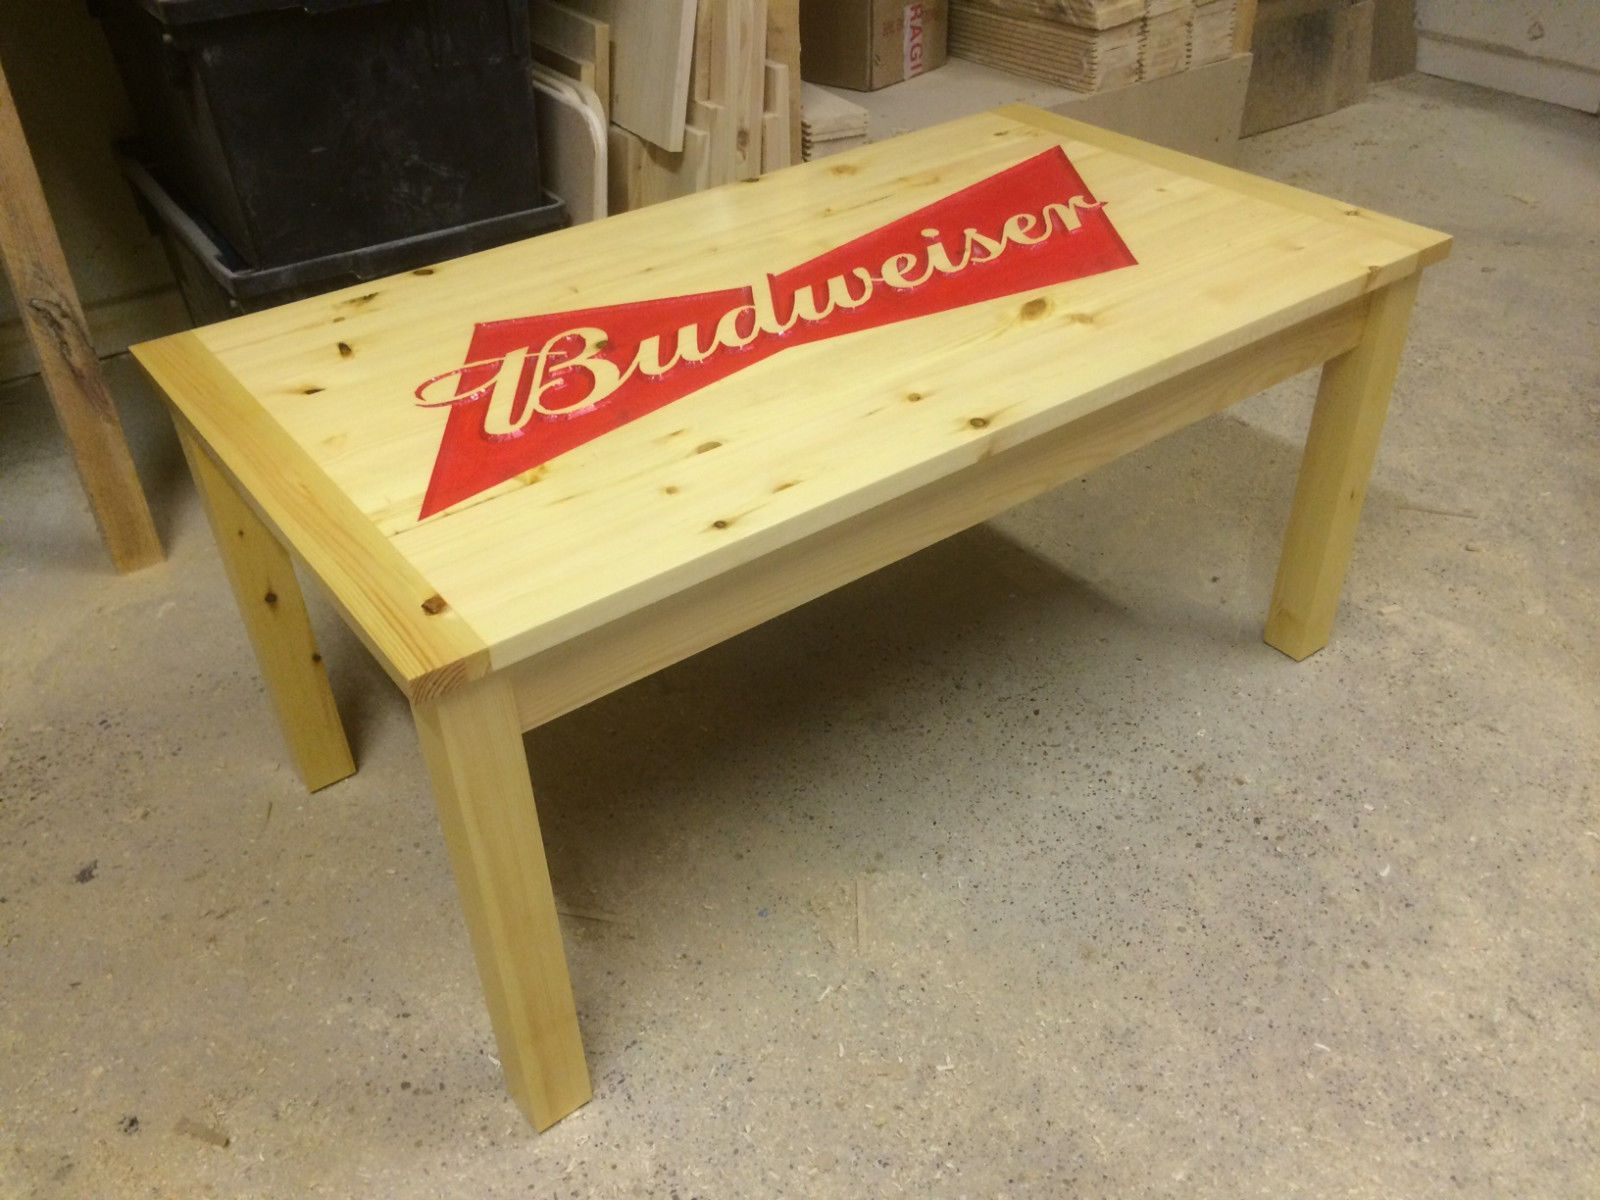 Strange Bespoke Carved Budweiser Coffee Table Man Cave Lady Cave Home Interior And Landscaping Oversignezvosmurscom